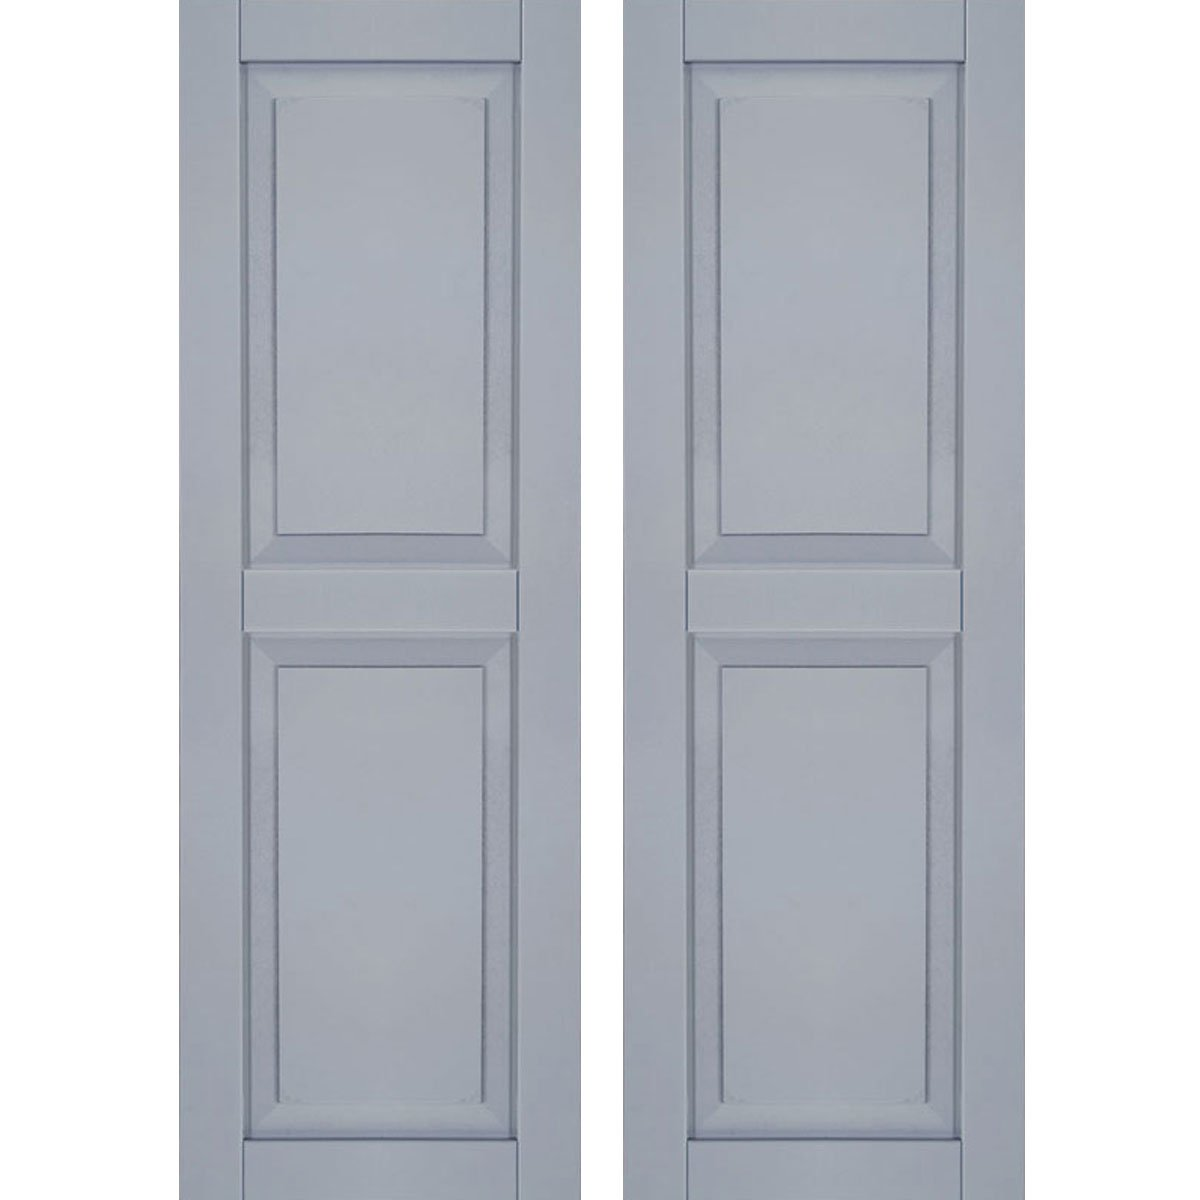 Ekena Millwork CWR12X025UNC Exterior Composite Wood Raised Panel Shutters with Installation Brackets (Per Pair), Unfinished, 12'' W x 25'' H